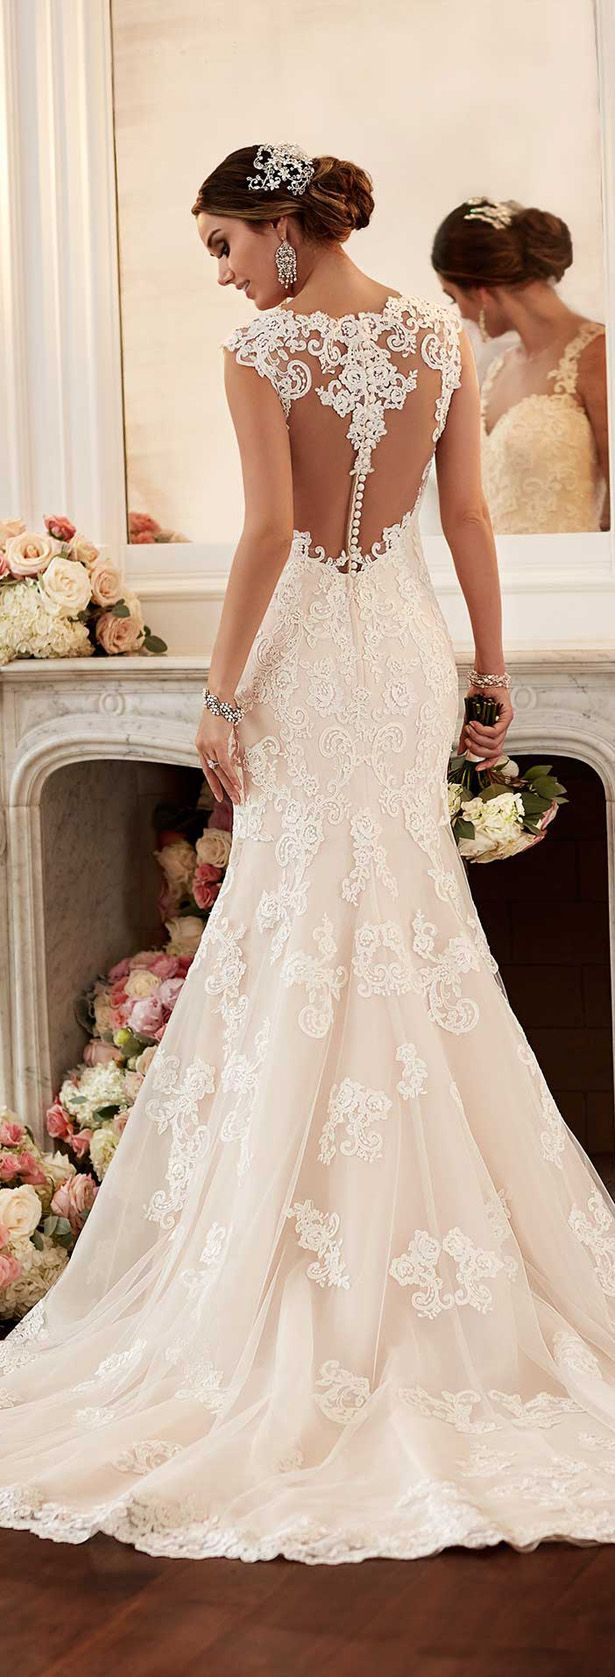 wedding dresses dresses for weddings Mesmerizing Wedding Dress Ideas That Would Make You A Fairy Princess